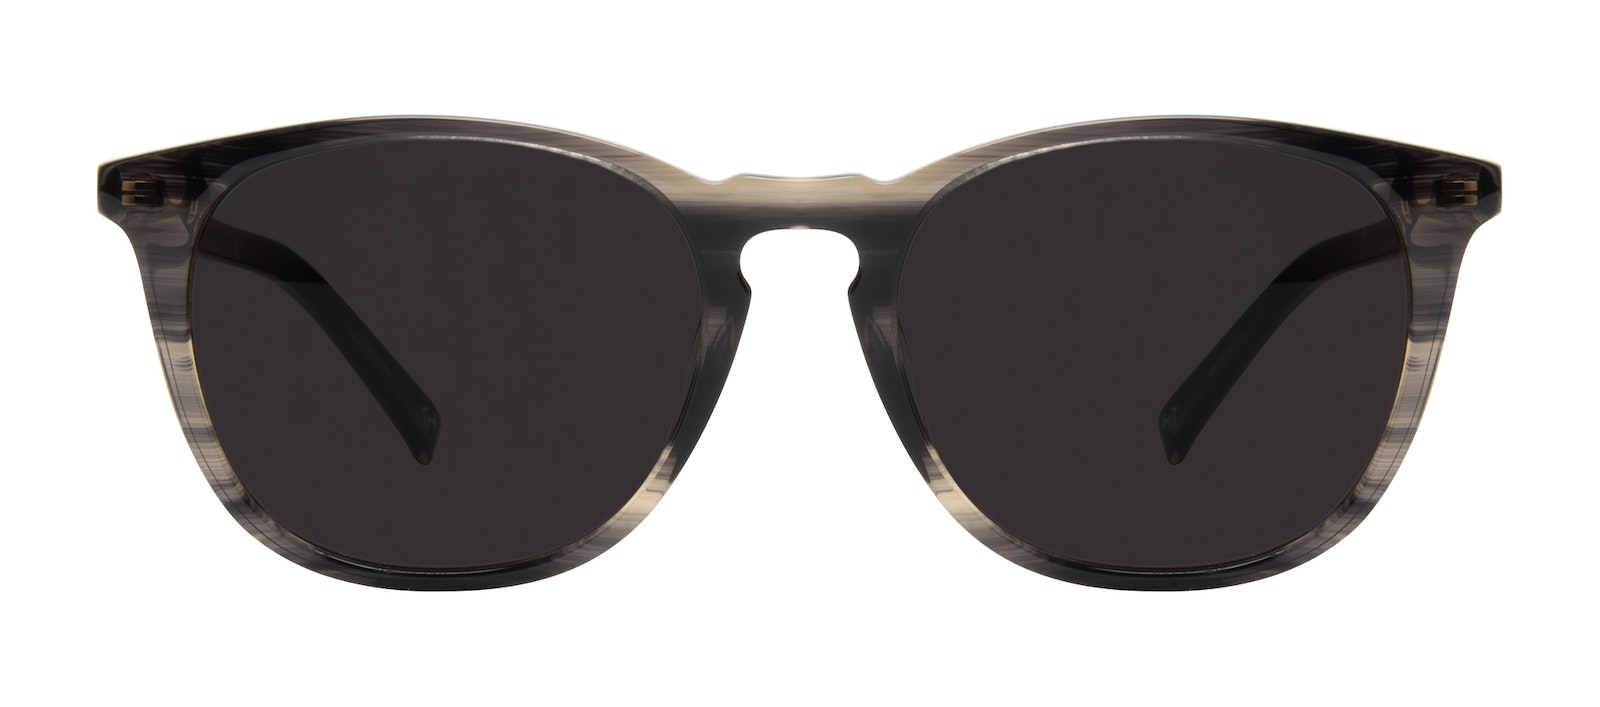 Affordable Fashion Glasses Round Sunglasses Men Kingston Mirage Front